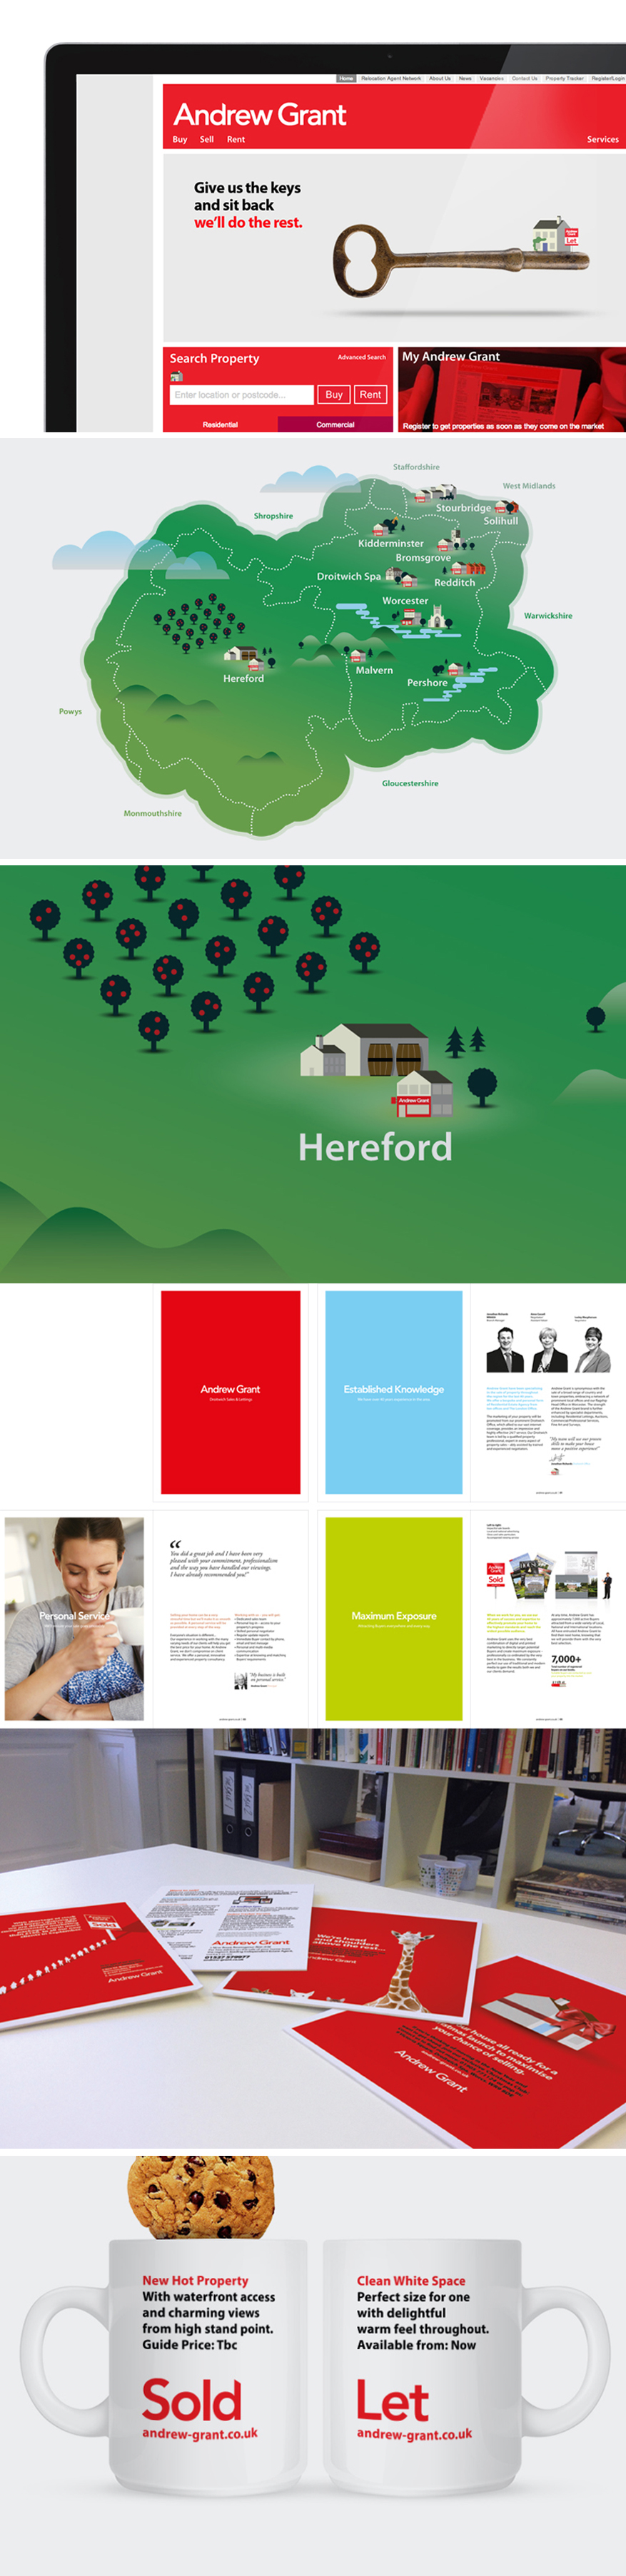 After celebrating 40 years in business in Worcestershire, Andrew Grant felt it was time to refresh their brand with a new logo design and much more. We worked closely with them to evolve and create an identity that worked across the board whether selling cottages or castles, online or offline. The brand now has a new vibrancy with clear messaging, clean design and a personalised illustration style to add character.